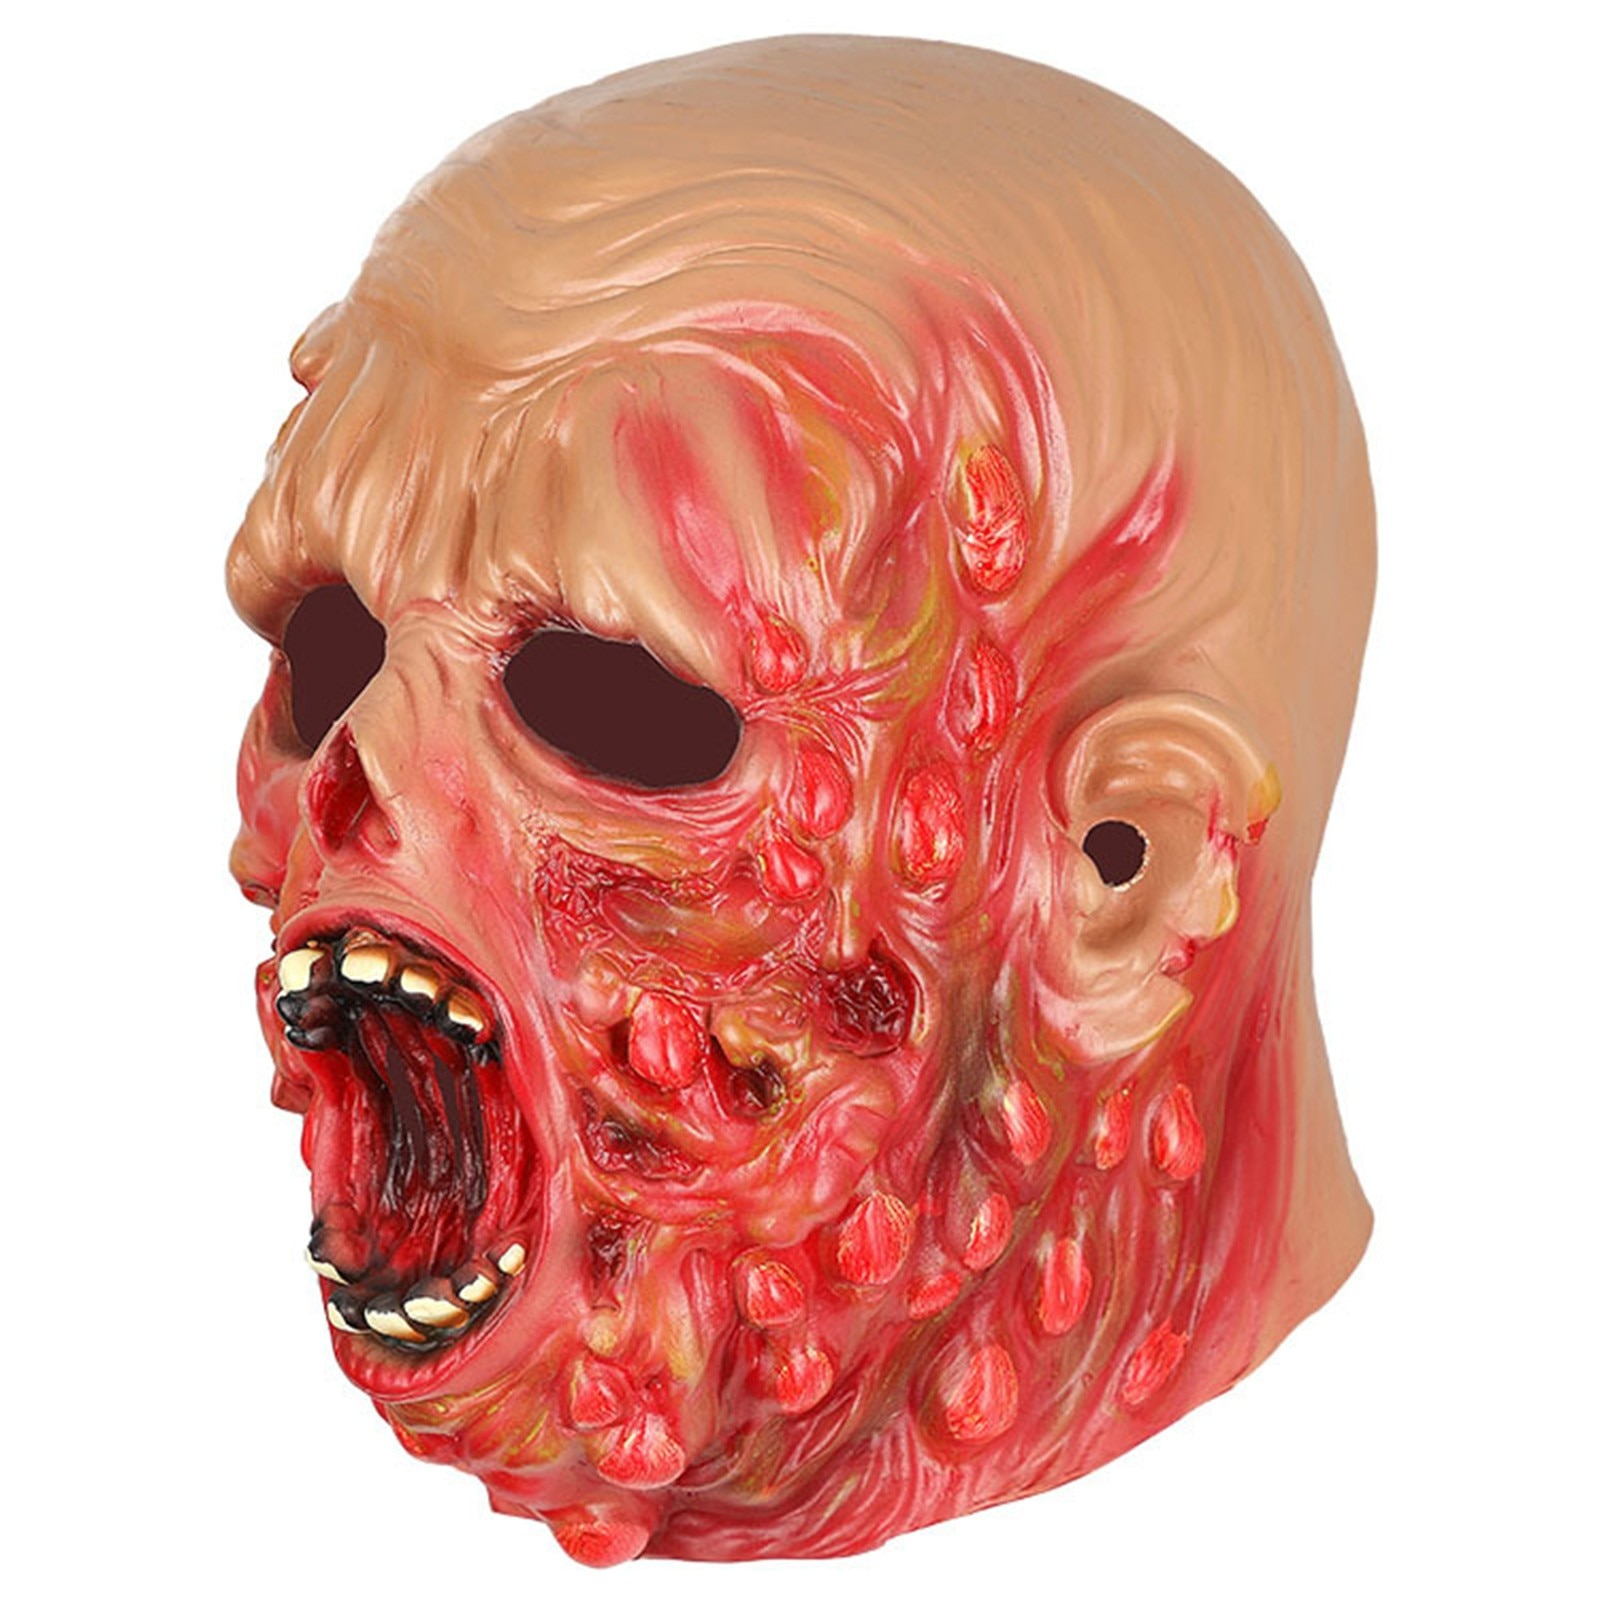 Halloween Scary Mask Ugly Face Horrible Sanguinary Lifelike Zombie Resident Cosplay Toy Evil Ghoul Act Props Masquerade Hoax 할로윈